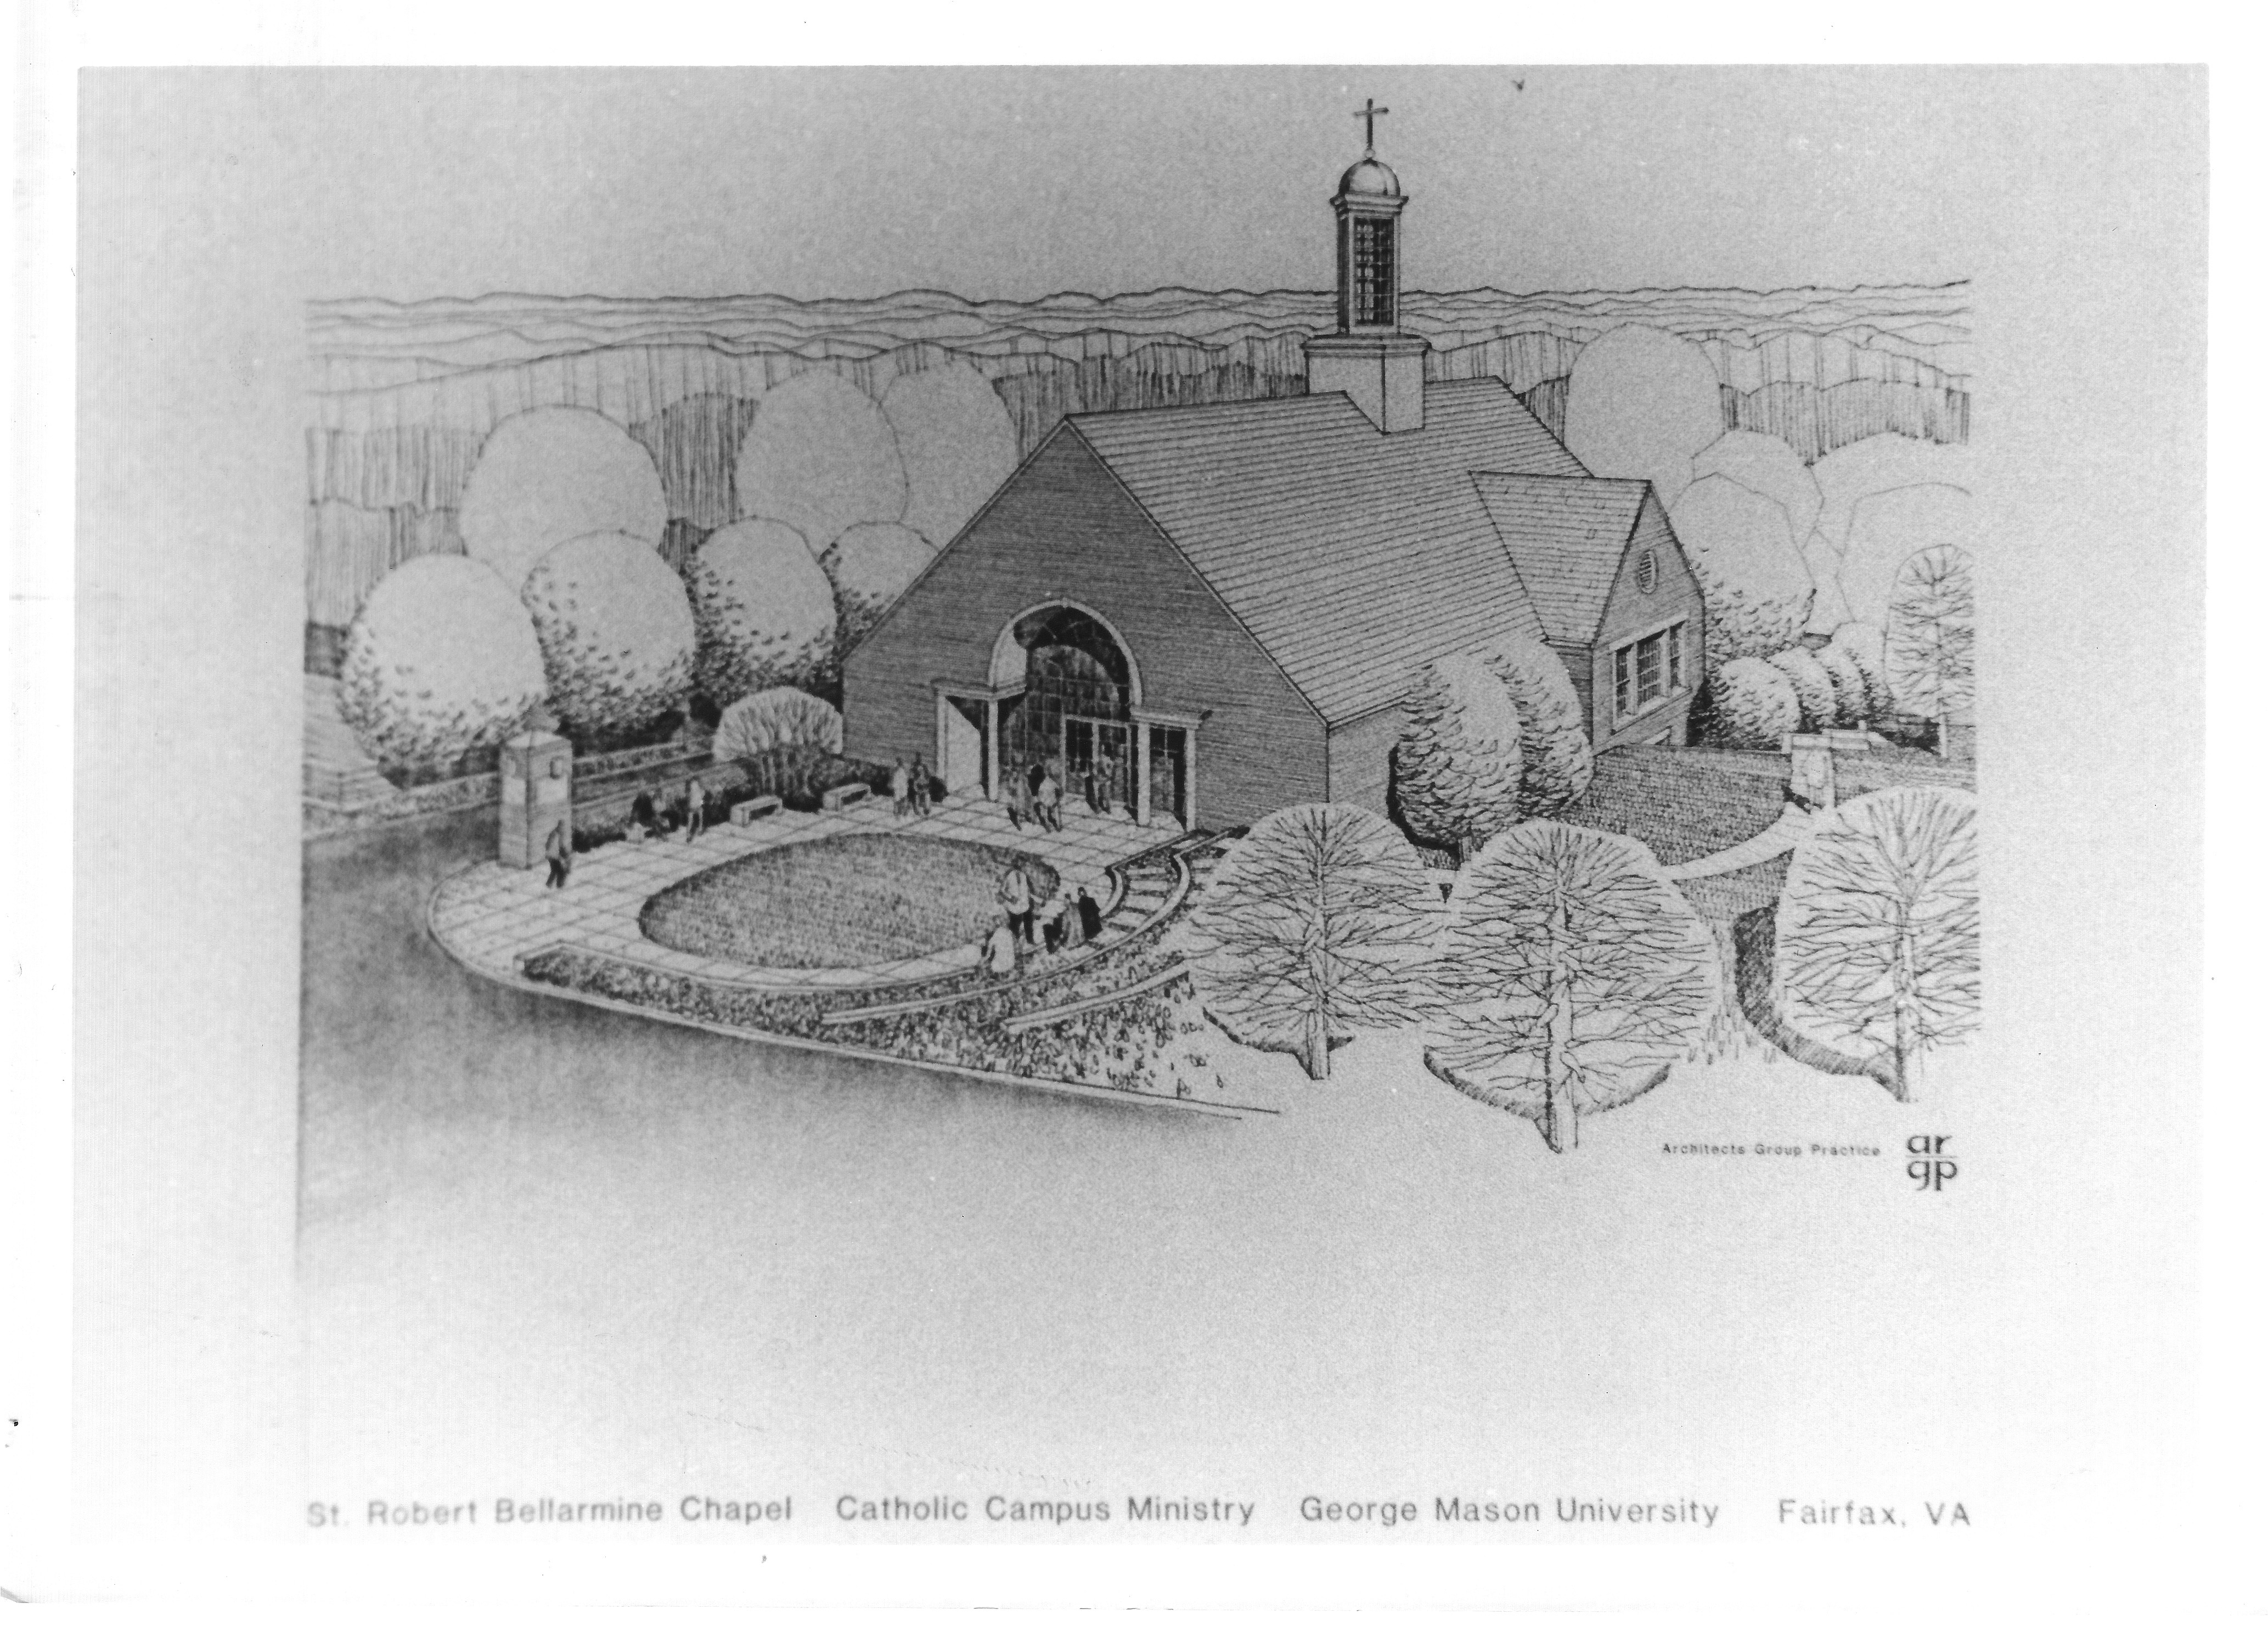 Architectural drawing, St. Robert Bellarmine Chapel, 1993